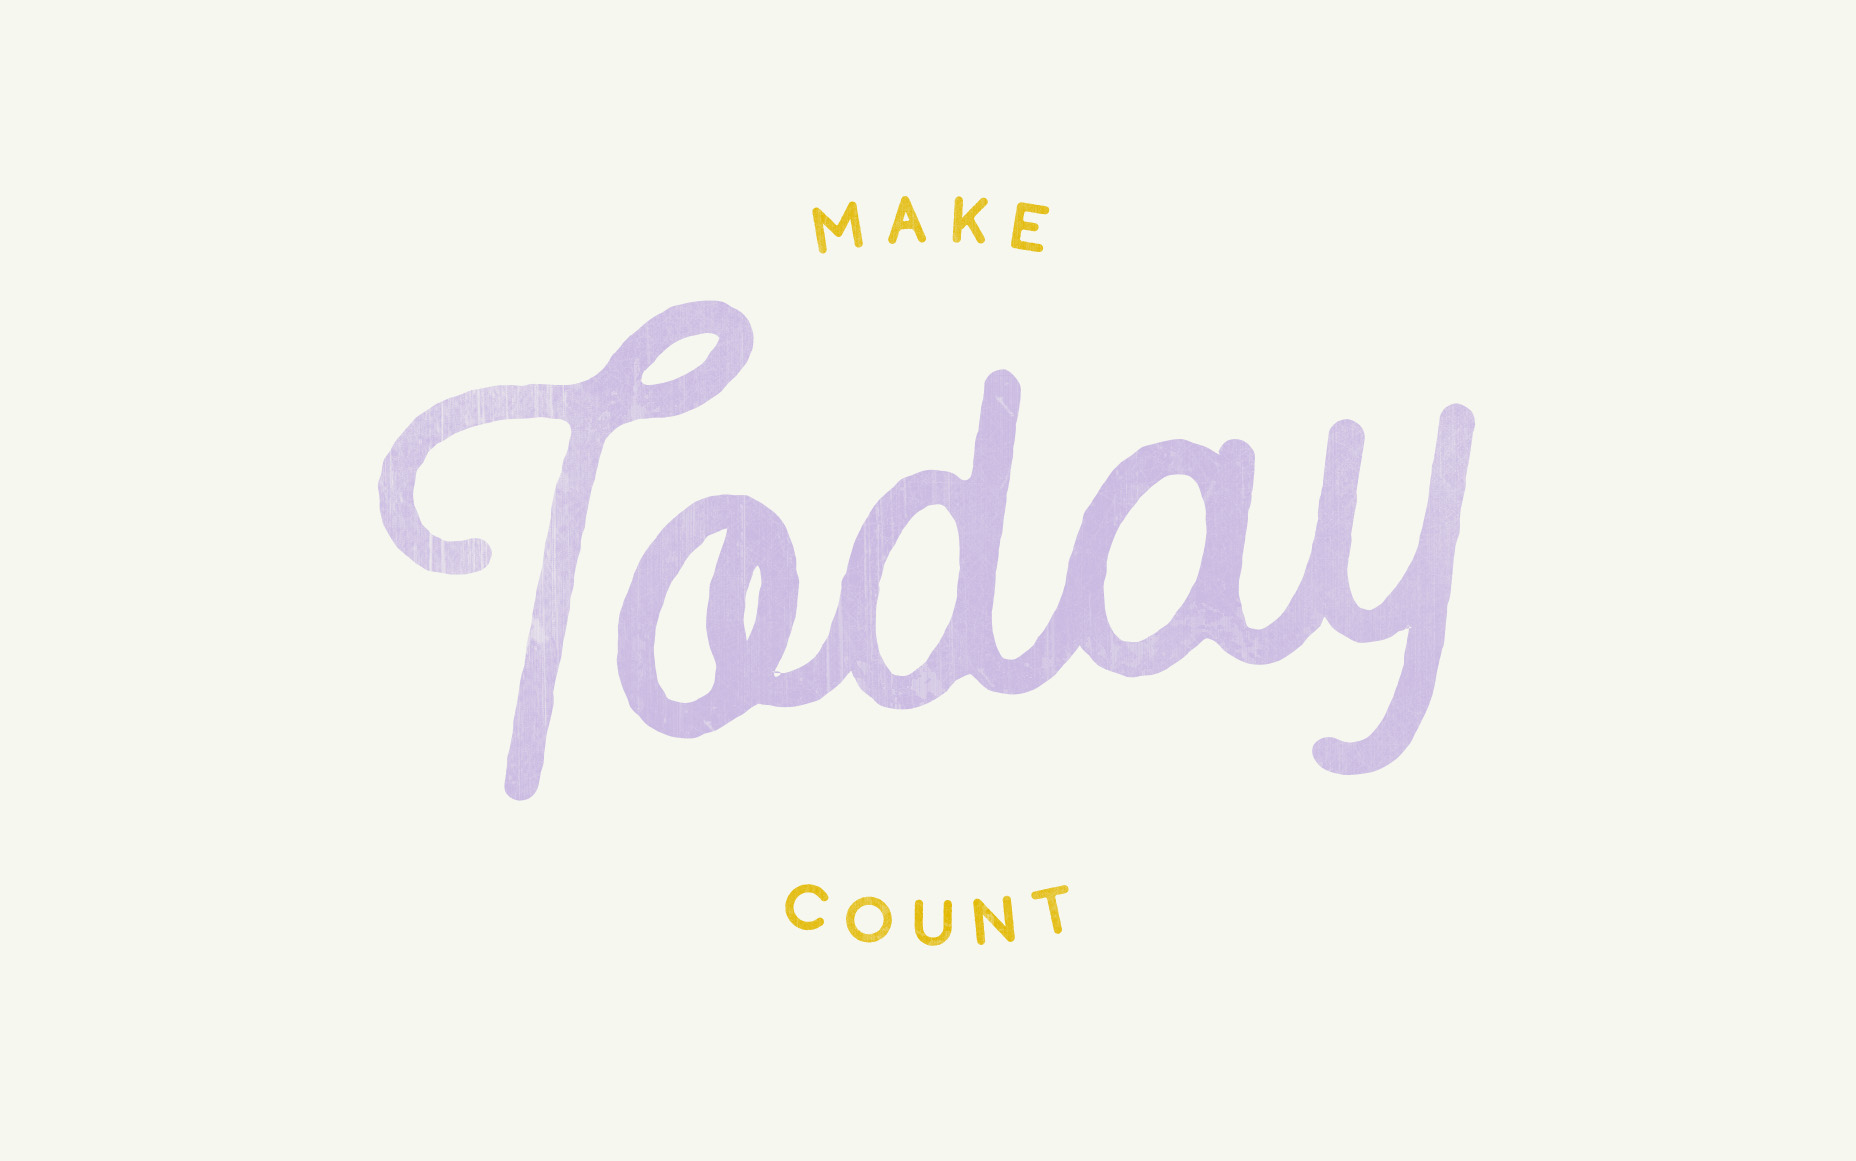 06-make-today-count